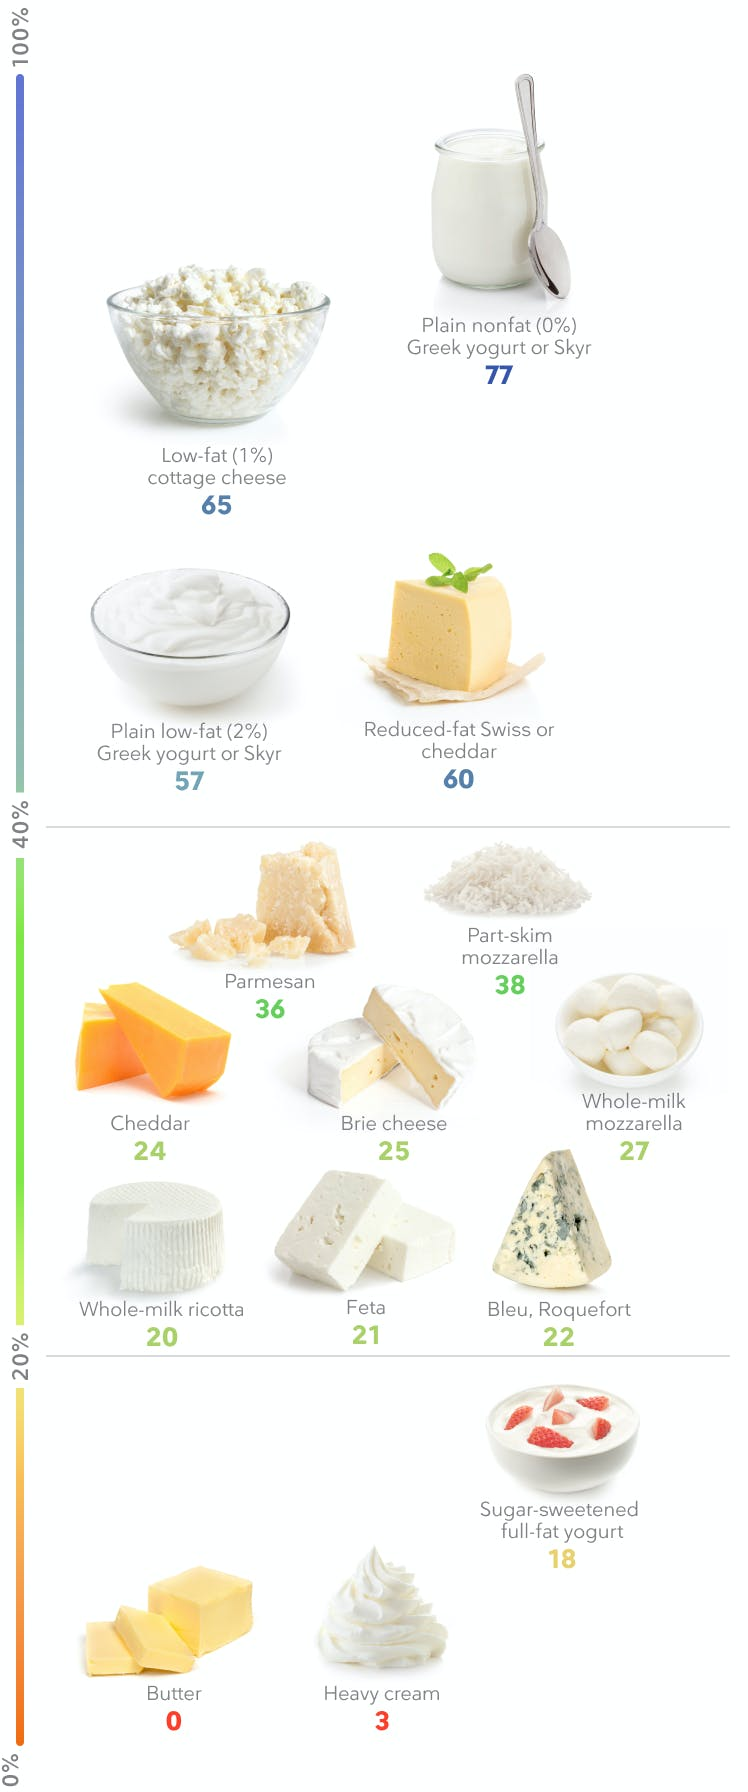 mobile-high-protein-dairy